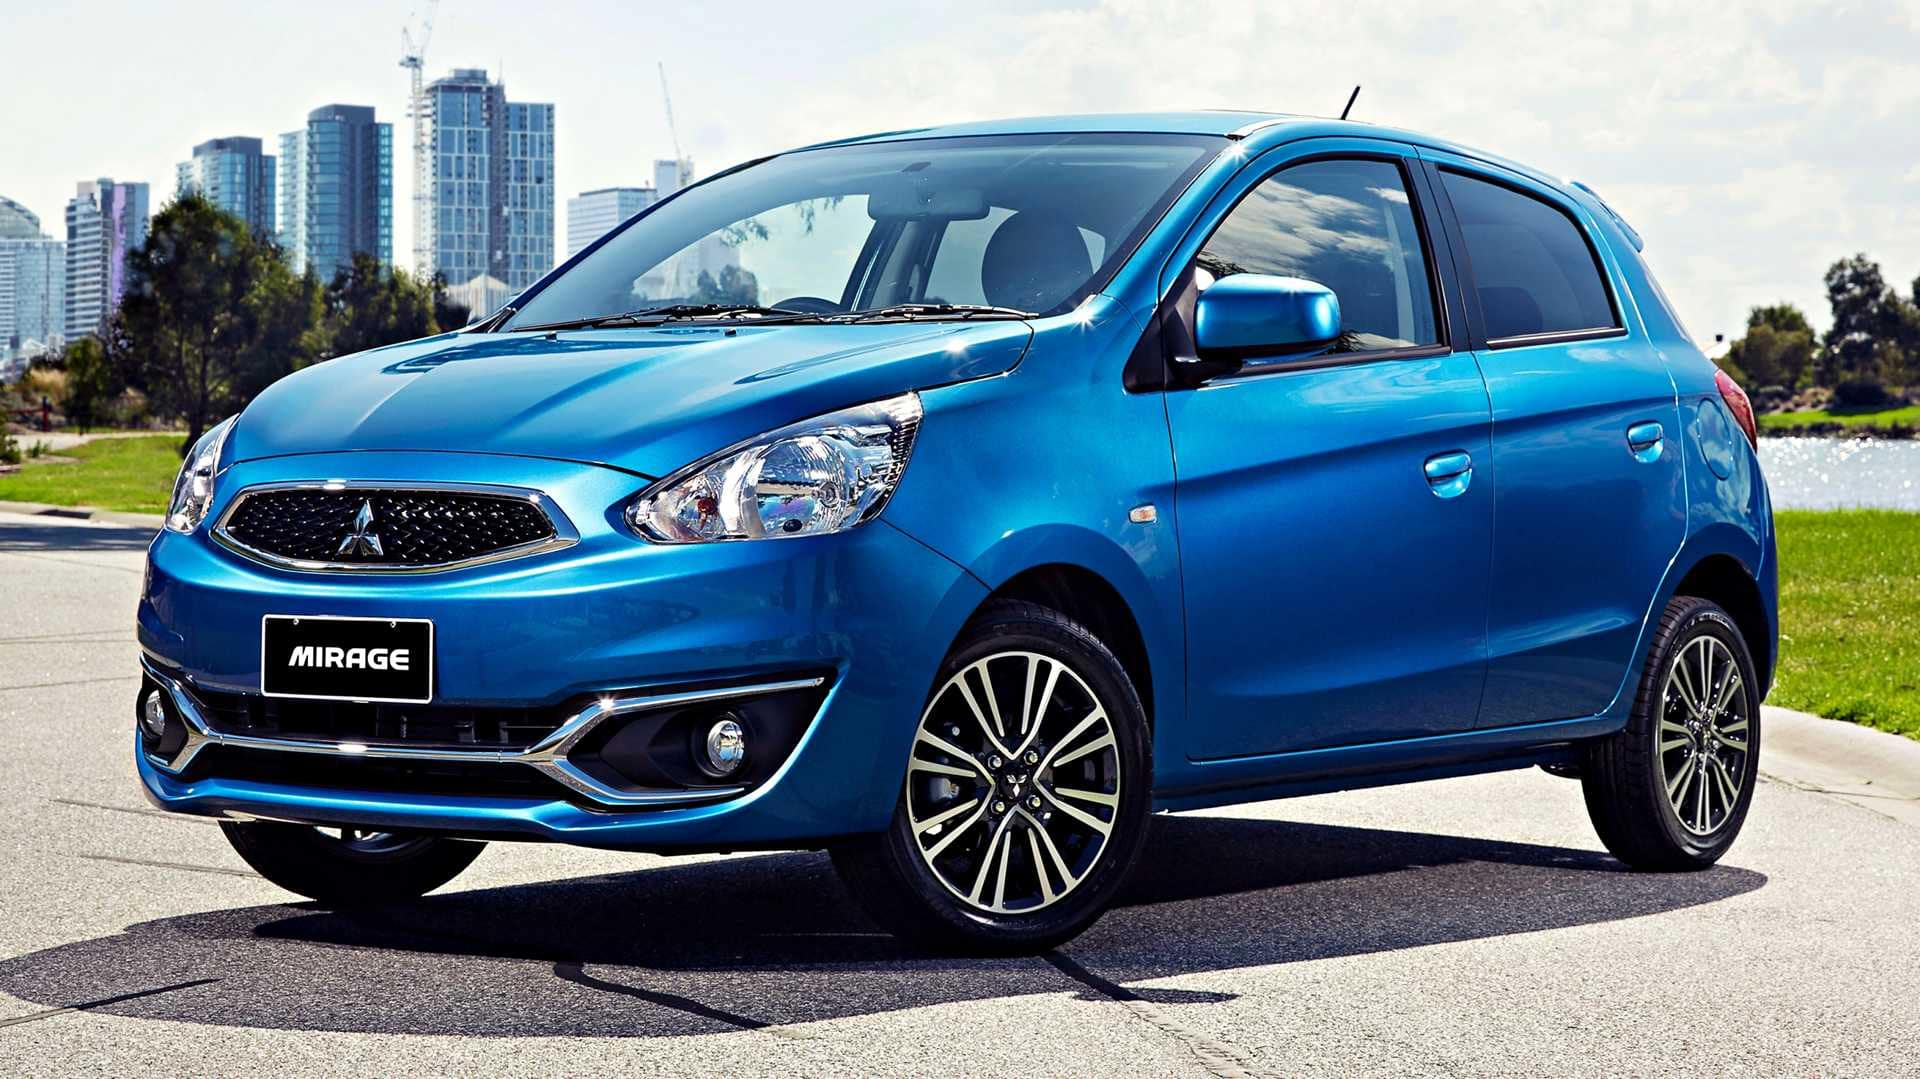 Chevy Spark Vs Mitsubishi Mirage Little Hatches Go A Long Way